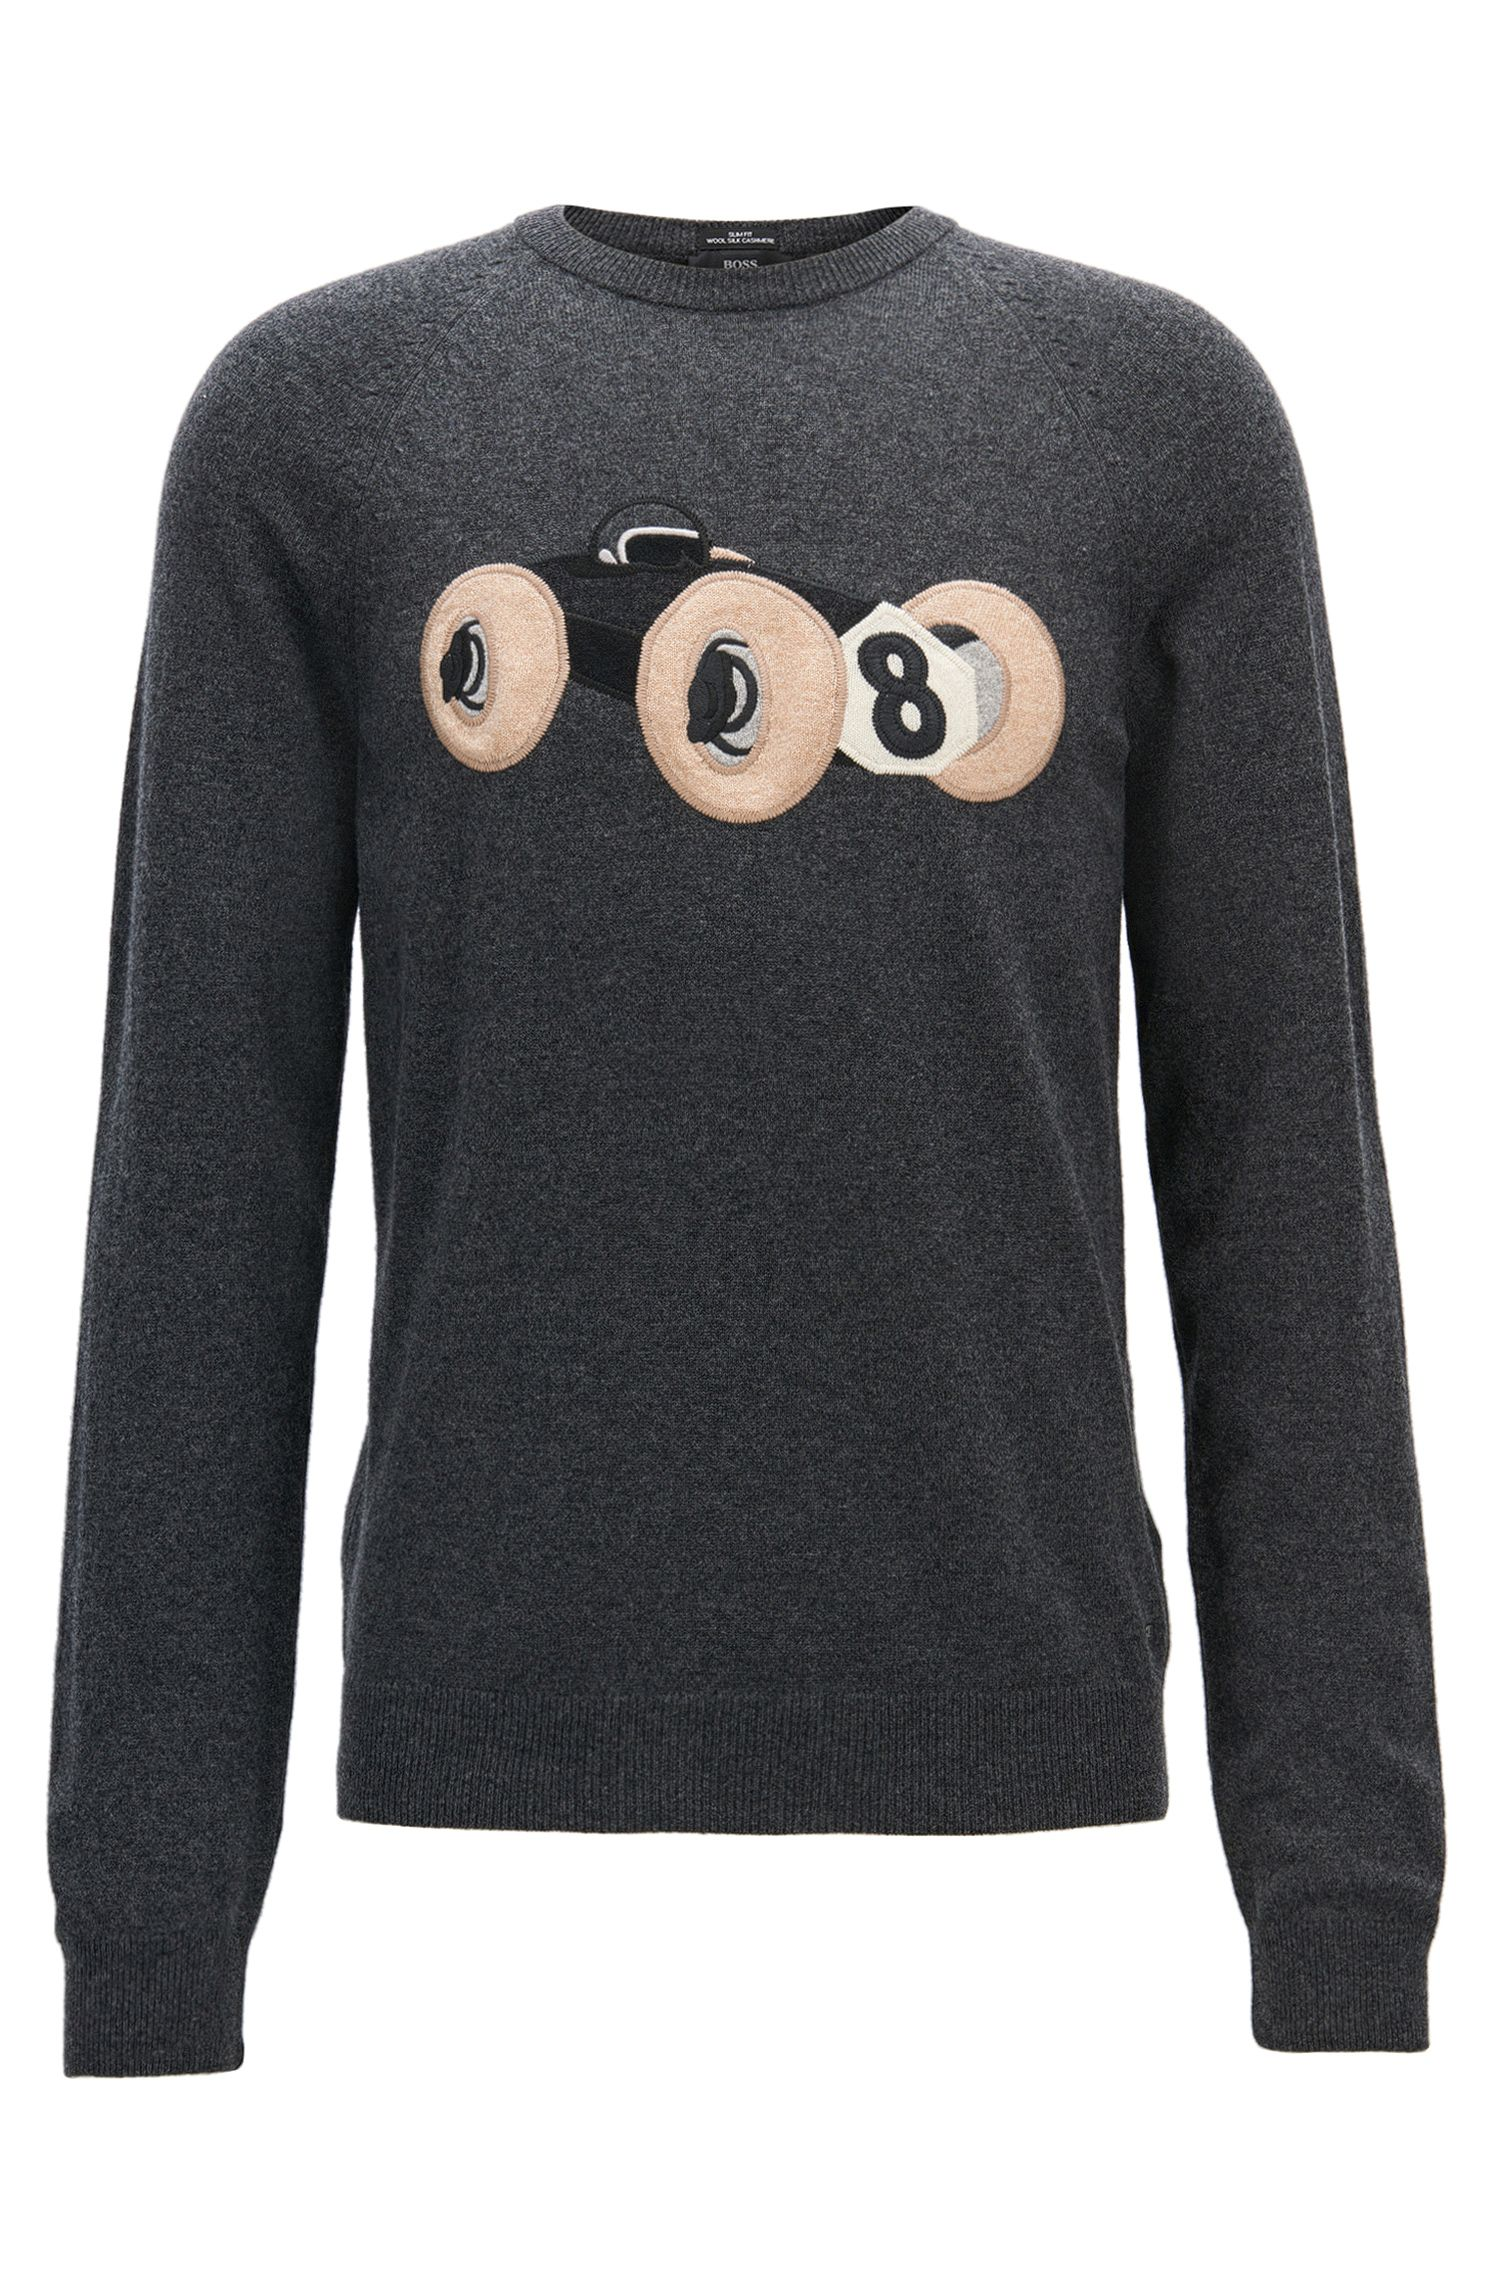 Wool-blend sweater with intarsia race car motif